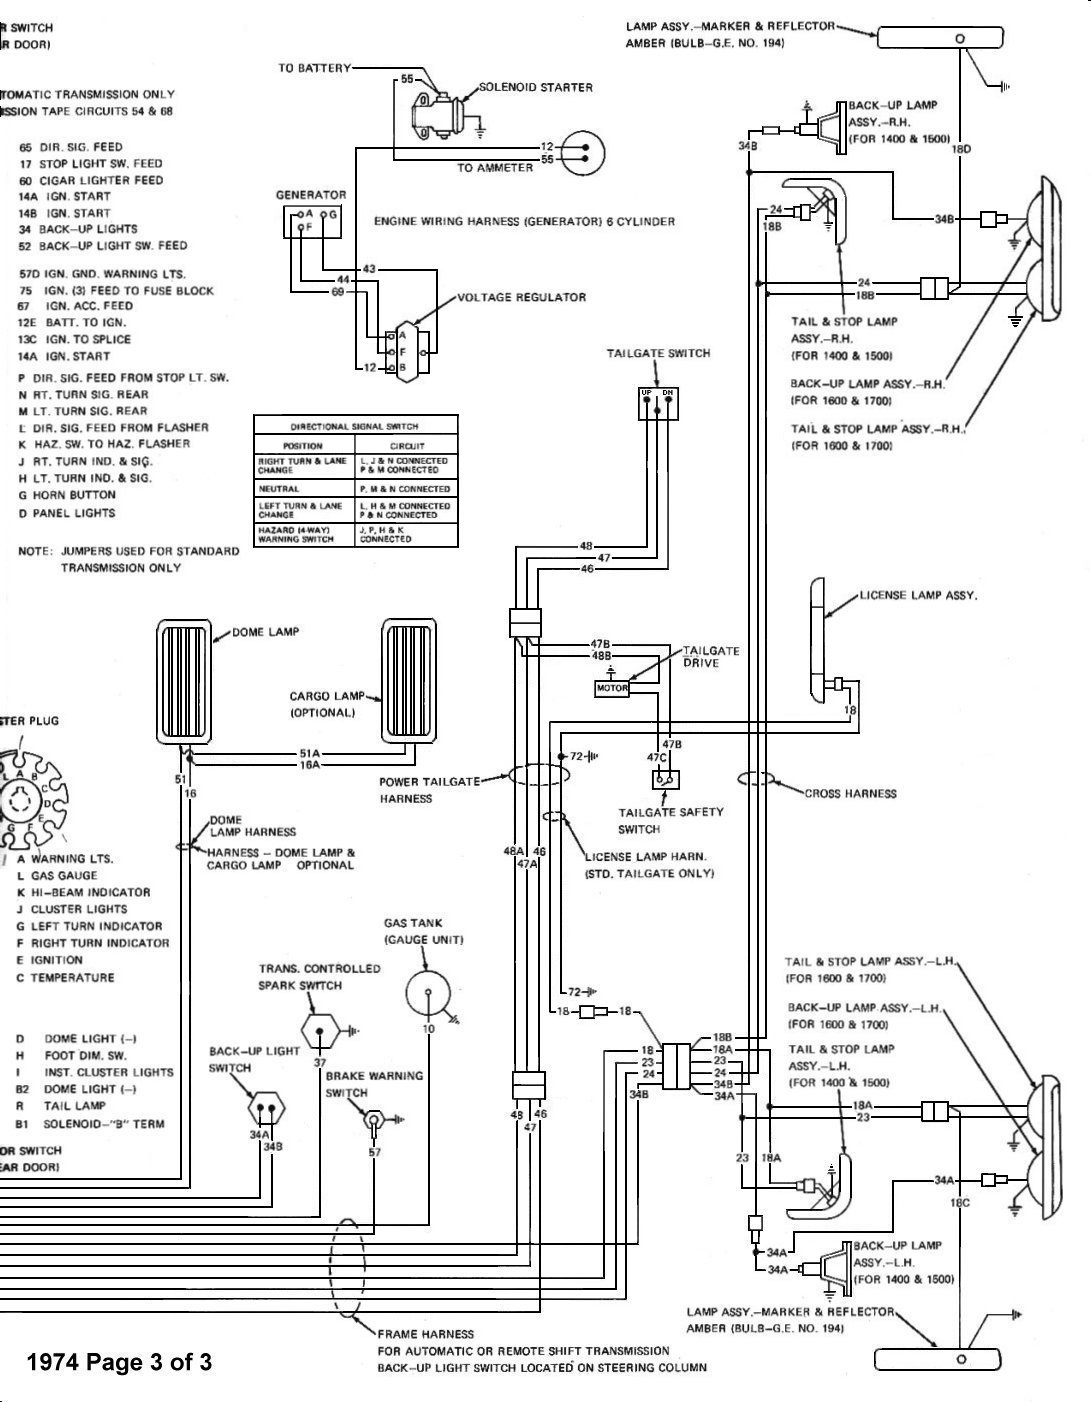 Diagram Harley Dash Wiring Diagram Full Version Hd Quality Wiring Diagram Diagramscourt Pretoriani It